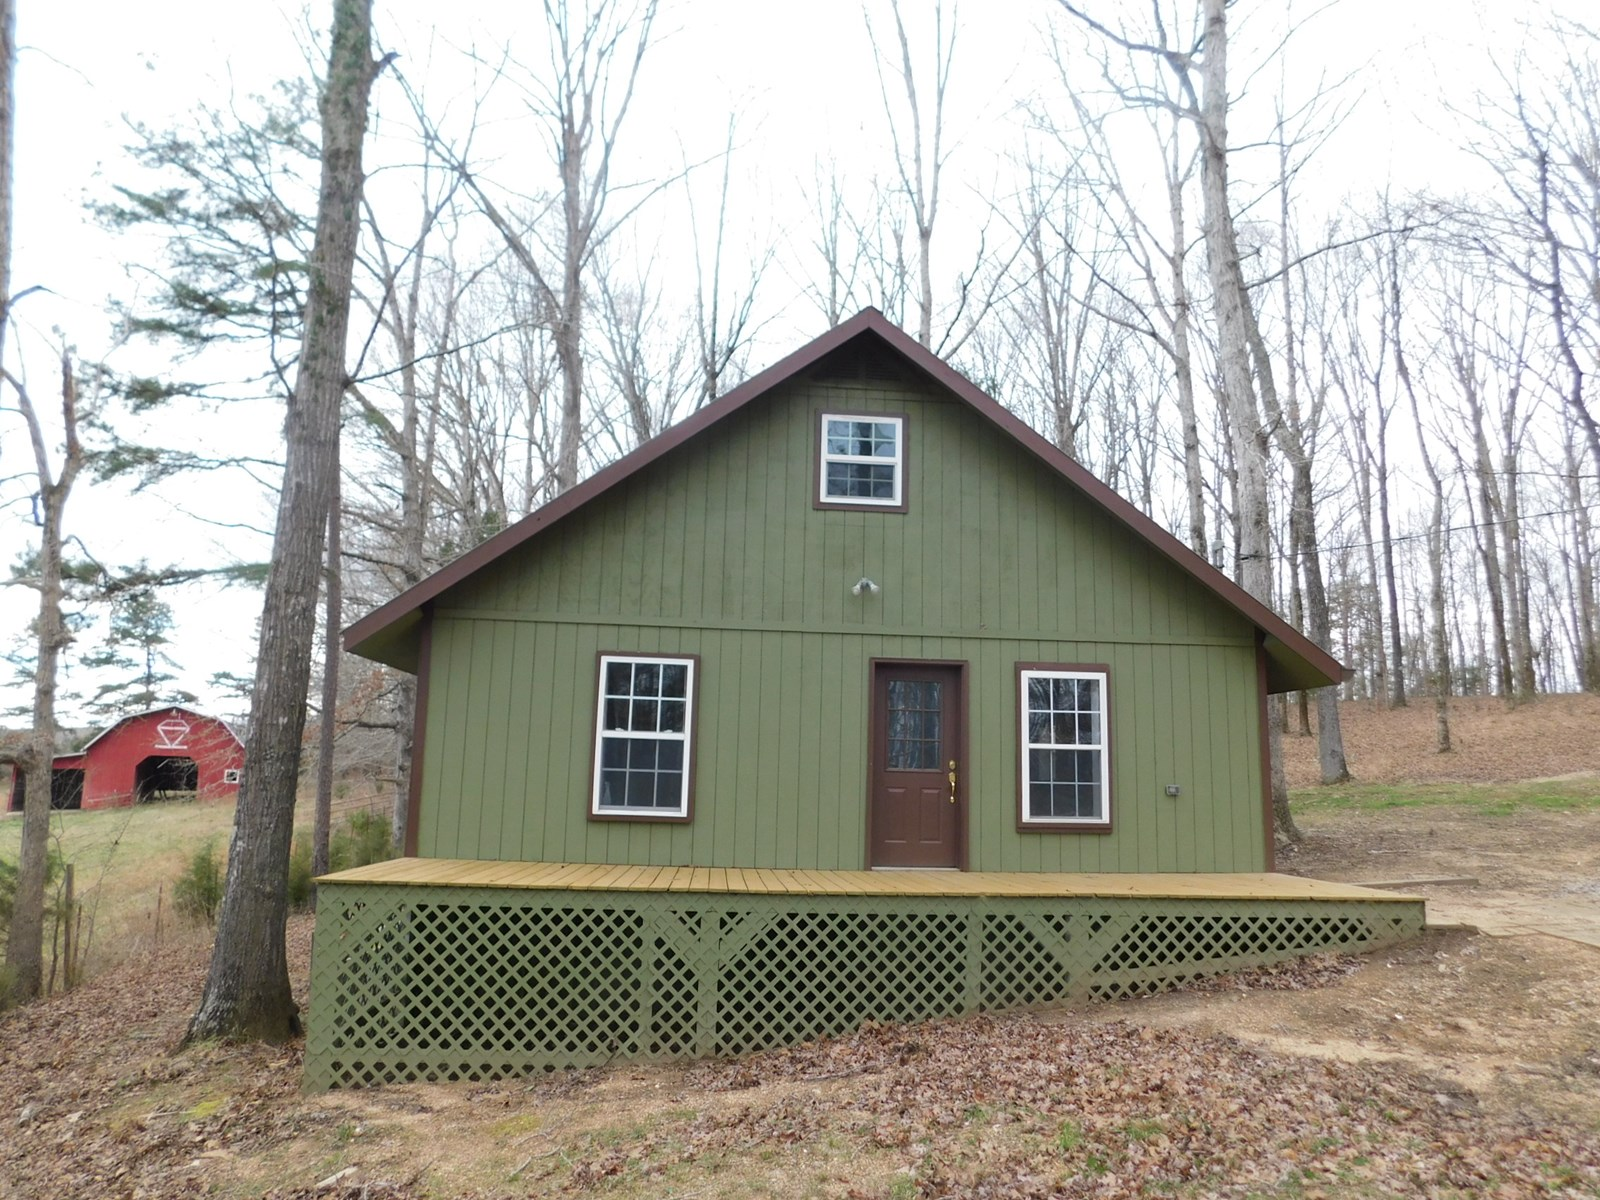 PRIVATE CABIN FOR SALE IN TN WITH POND, BARN, FENCING, LAND